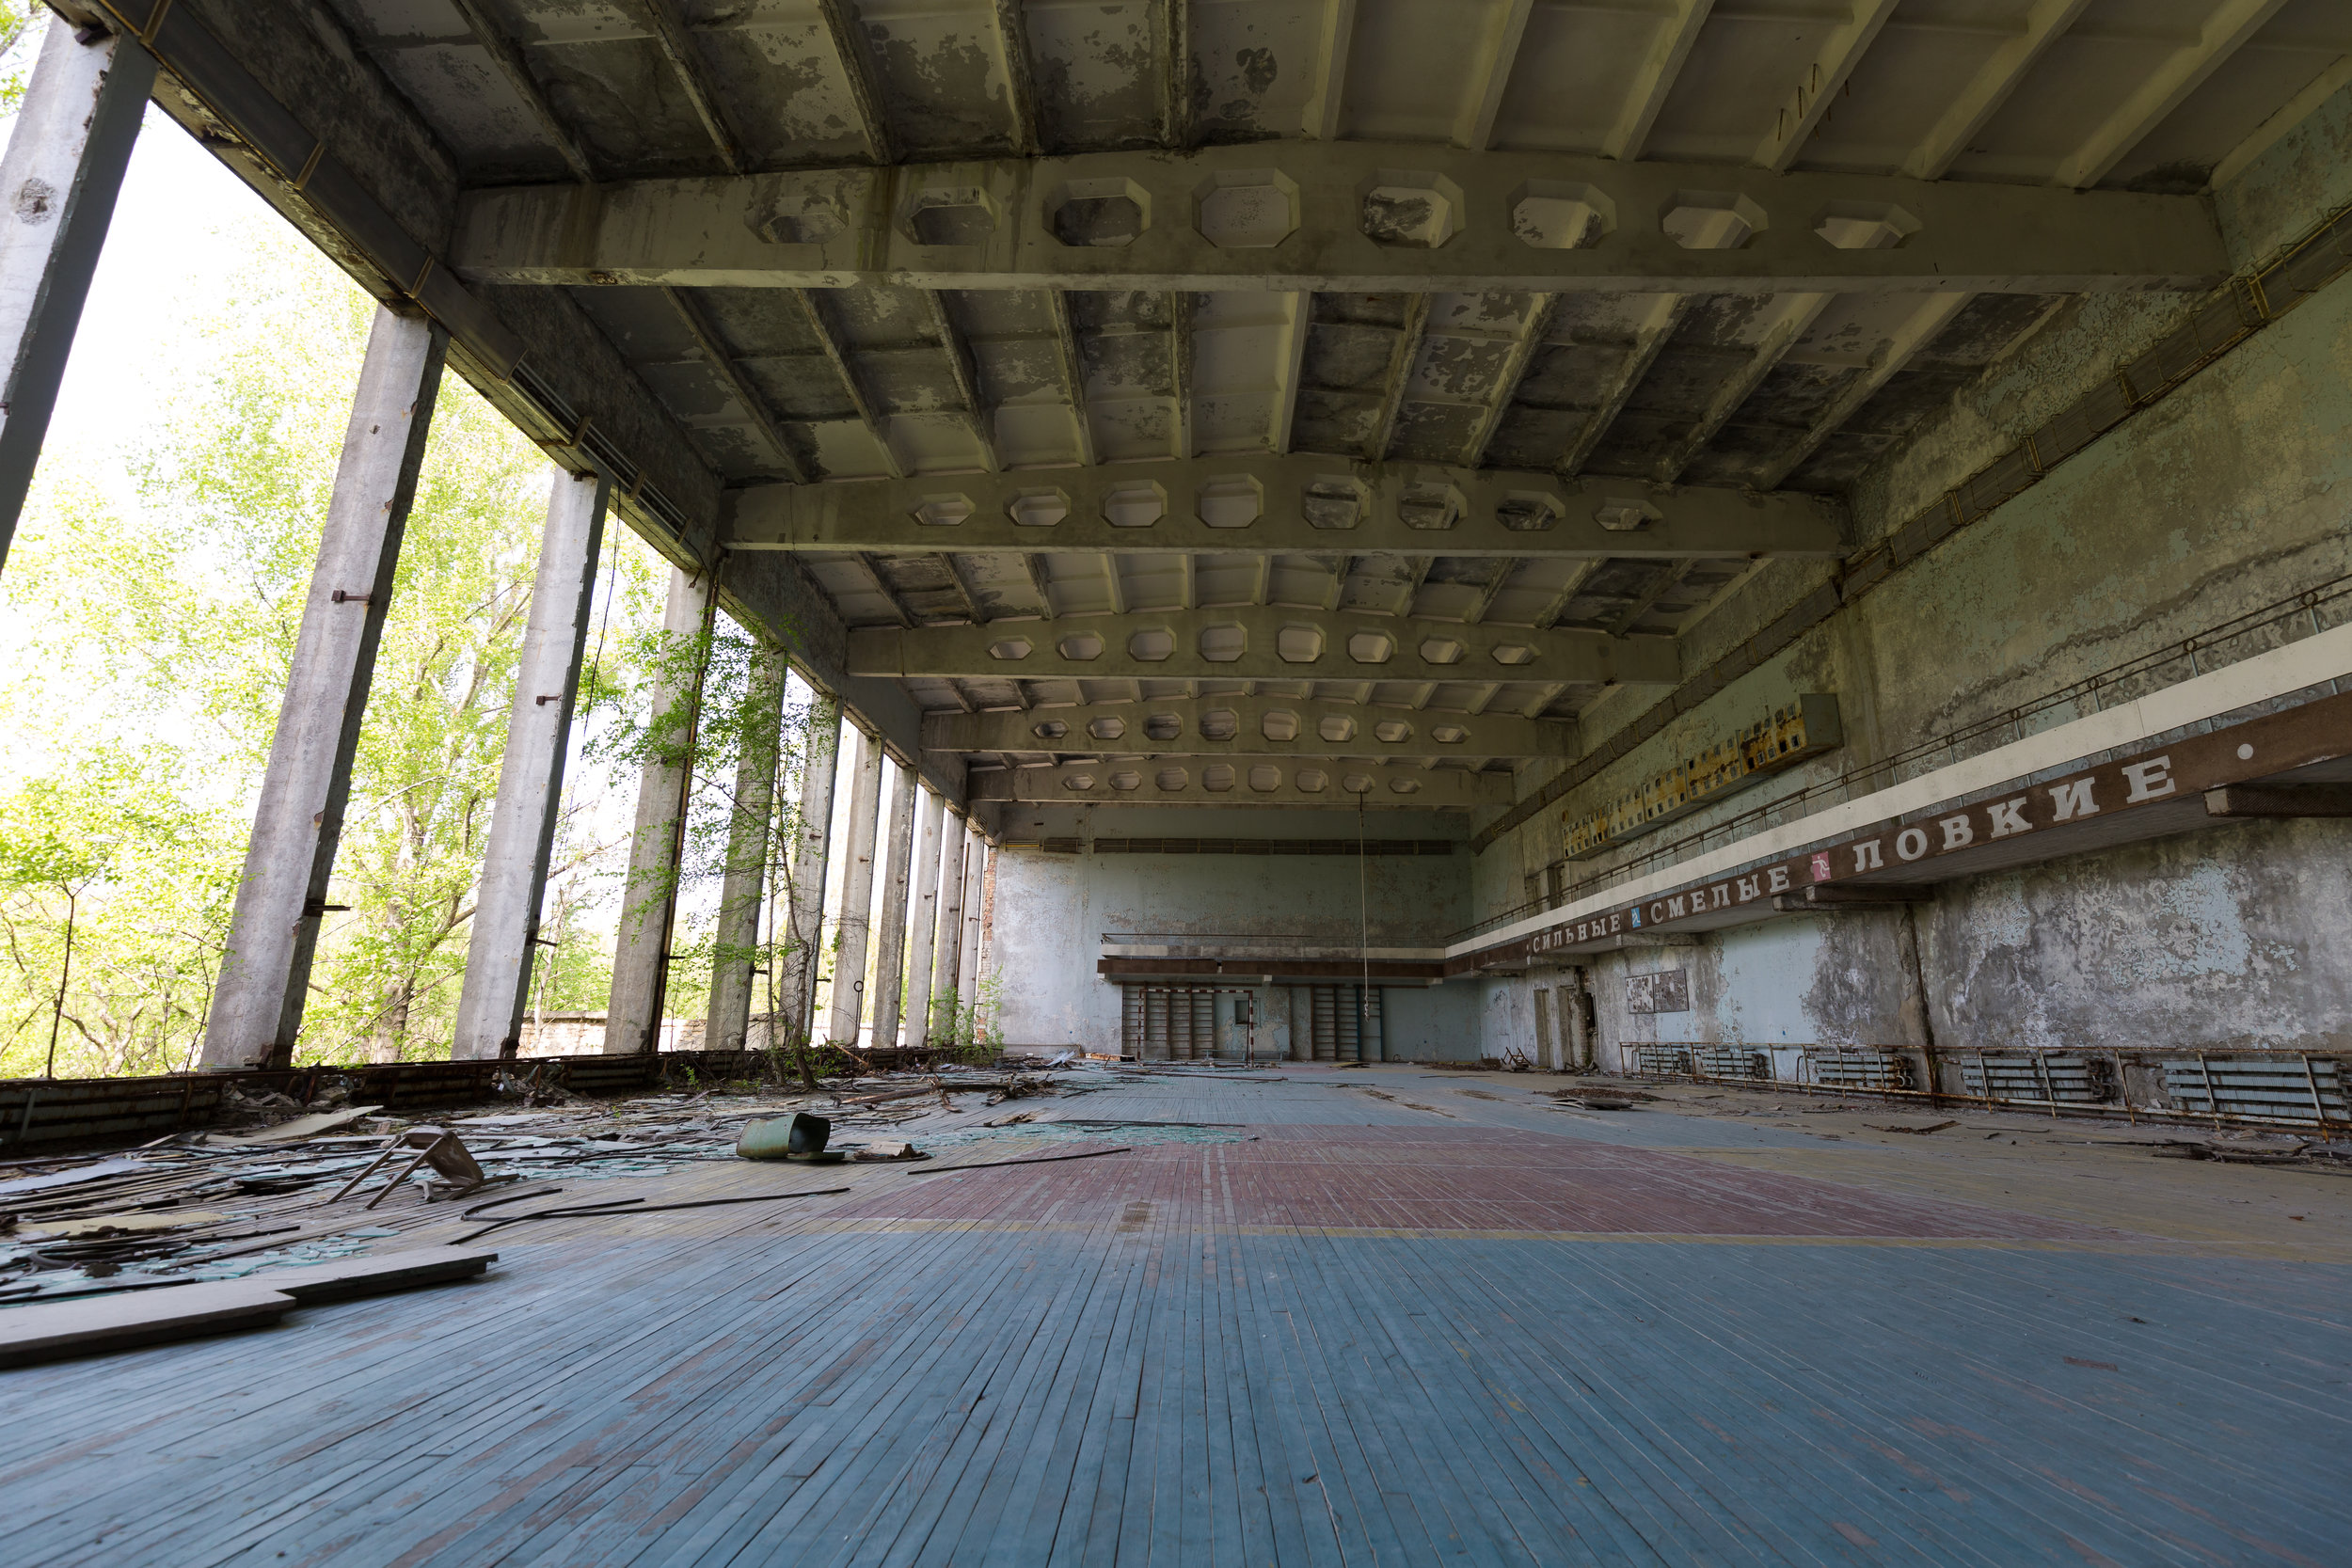 One of 10 gyms within the city of Pripyat a city that covered a total of over 7 million square feet.